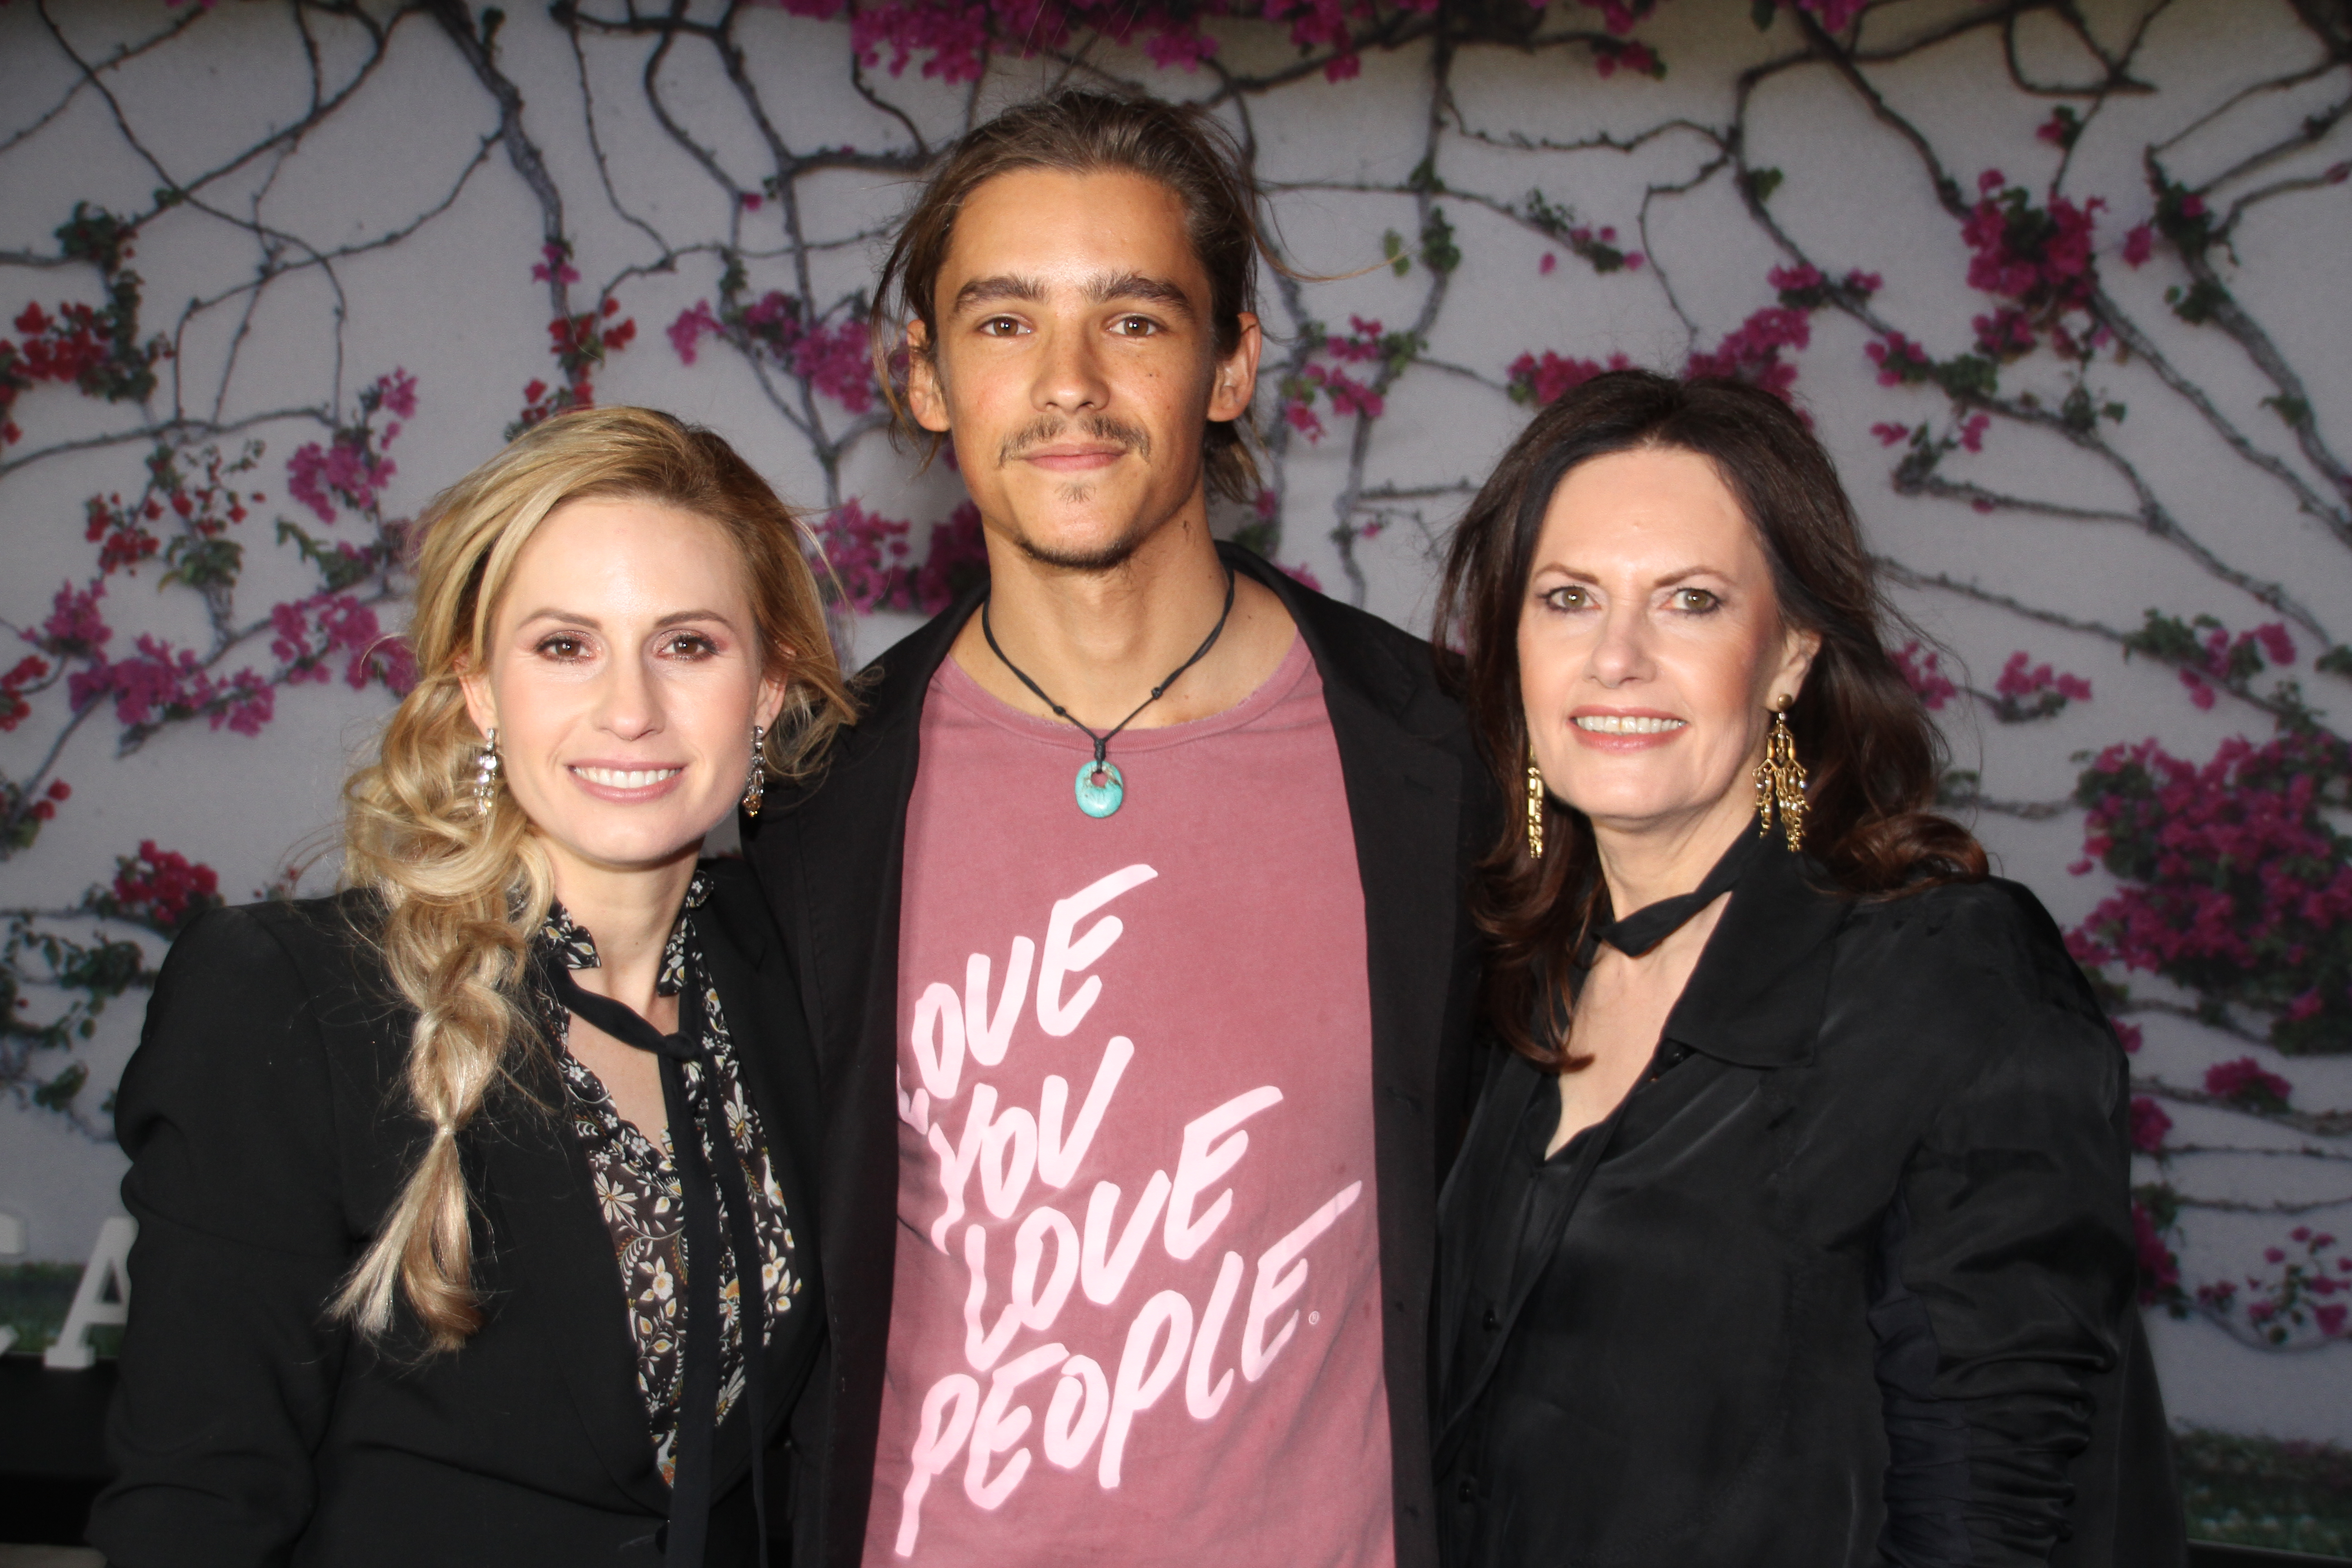 left to right Heath Ledger's sister Kate, last year's winner Brenton Thwaites and Heath and Kate's mum Sally Bell